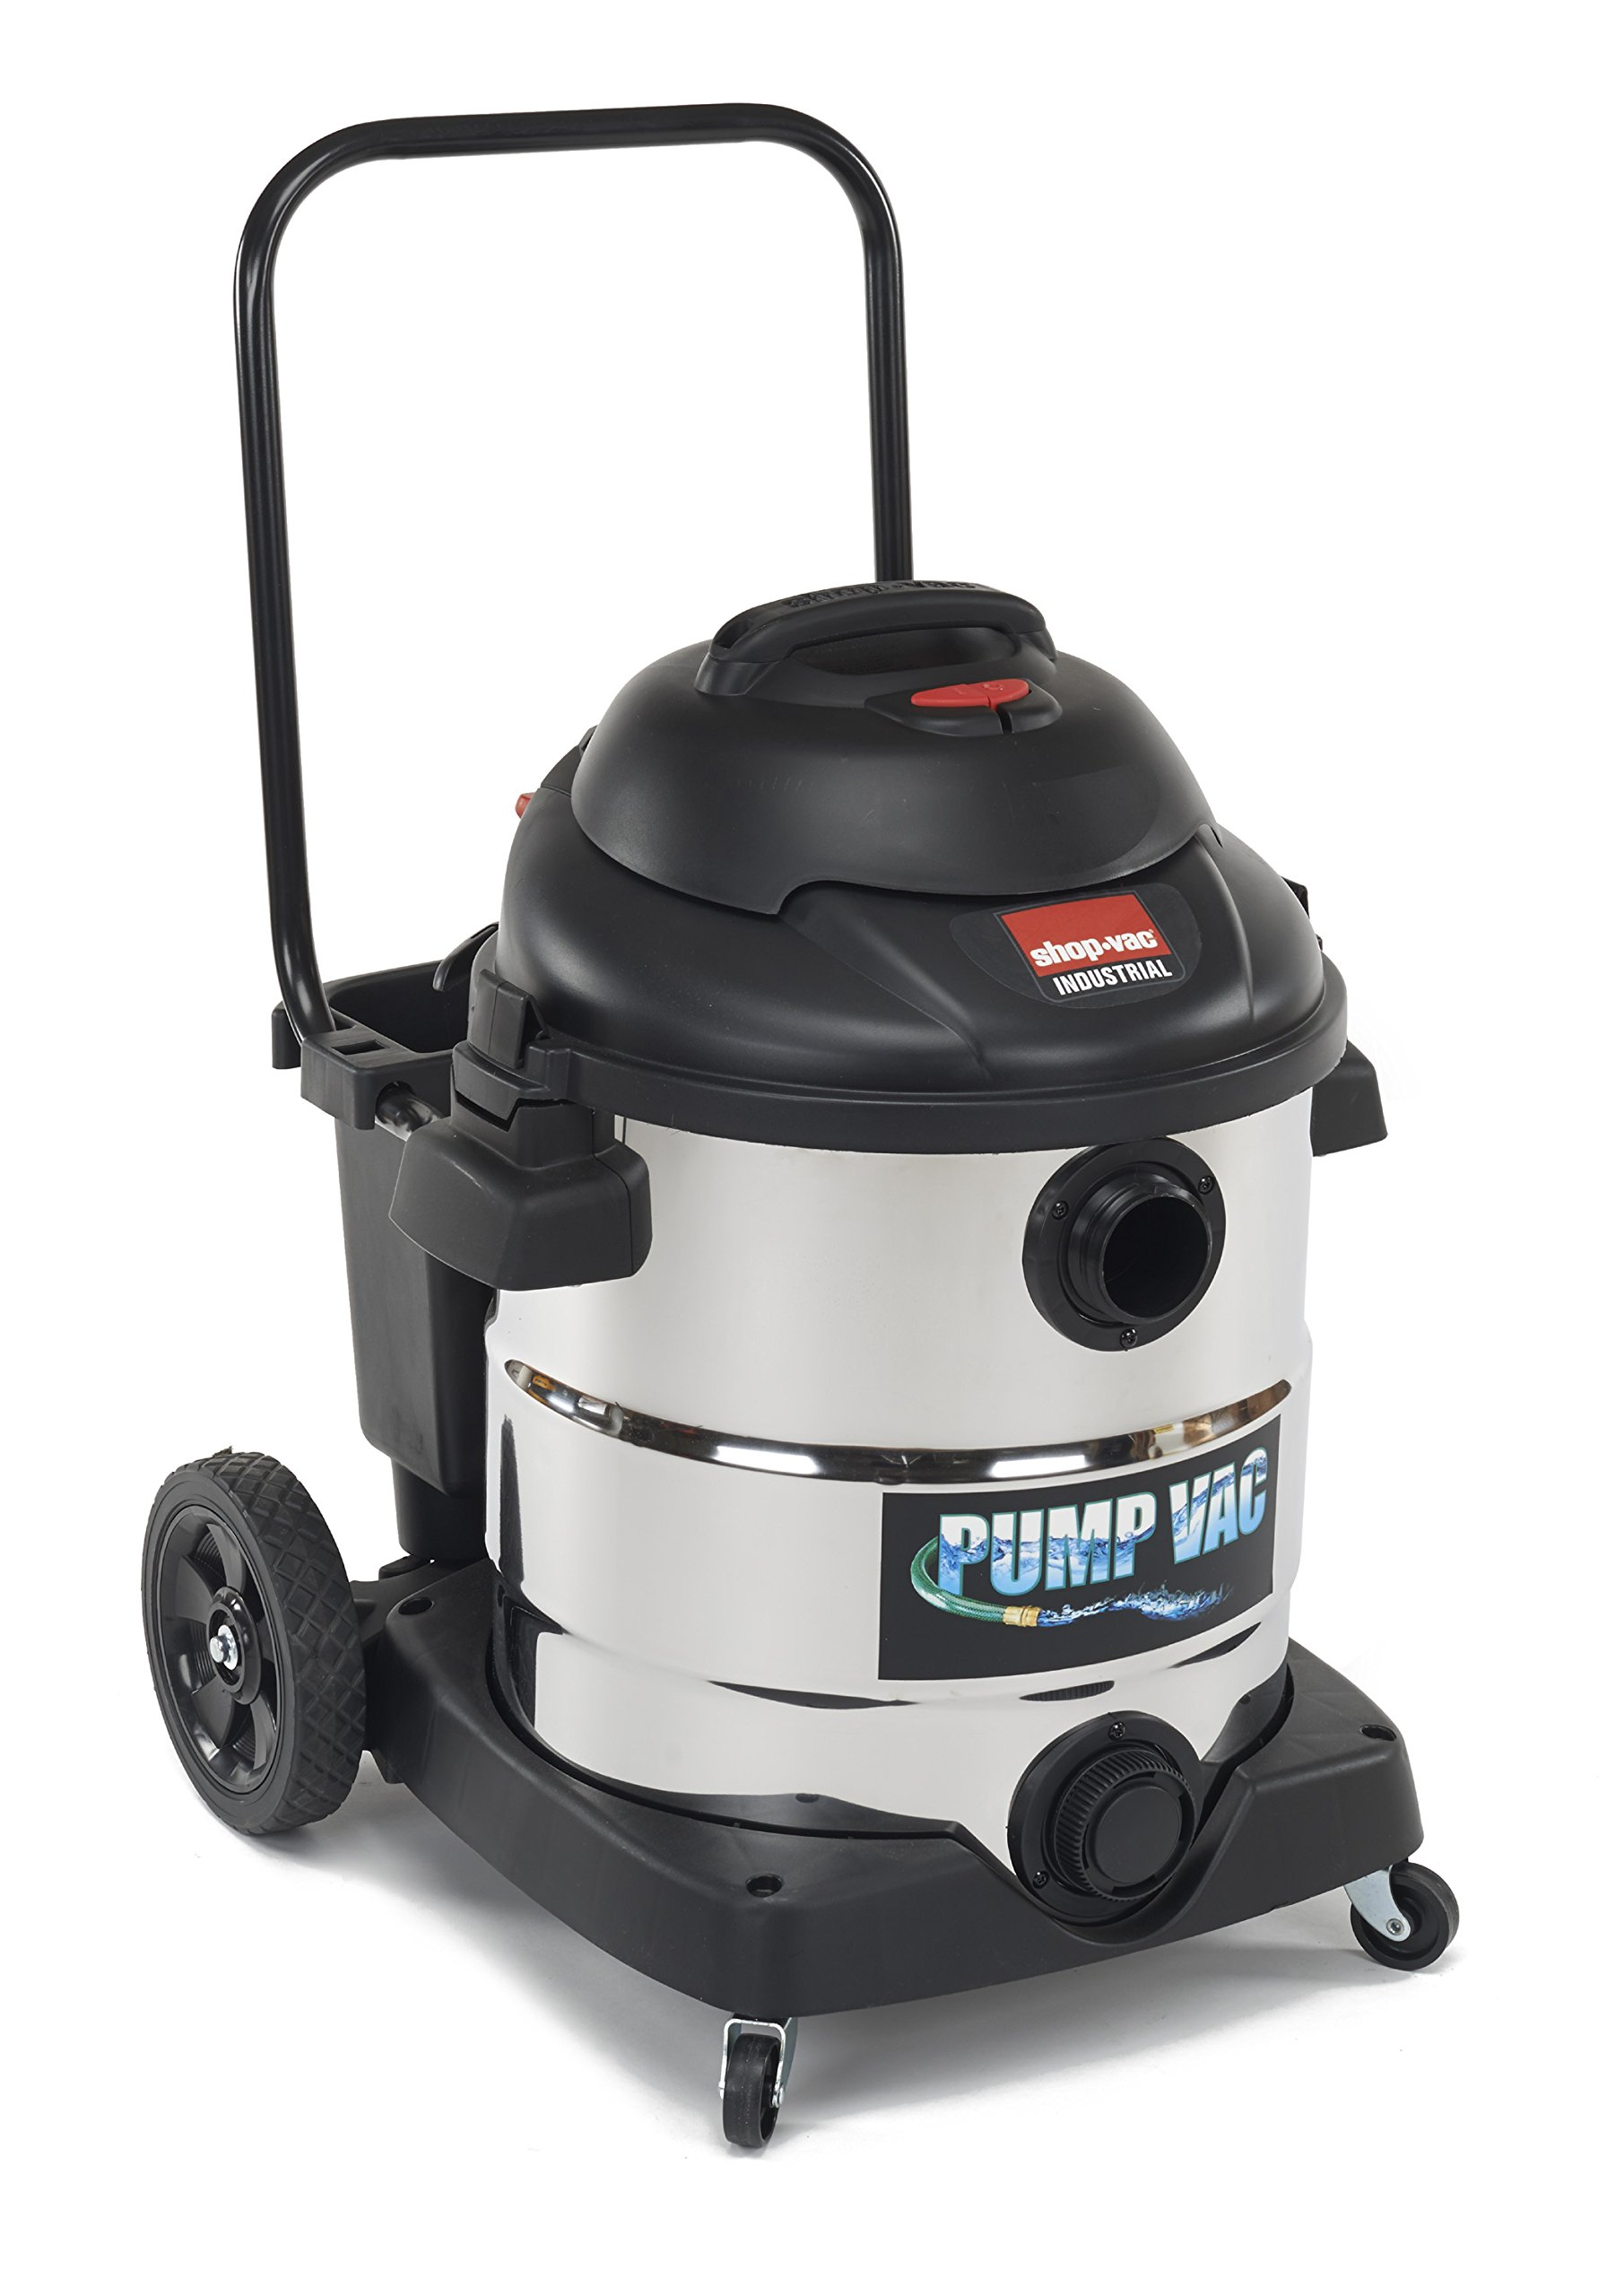 Shop-Vac 9604810 6.5 Peak HP Wet Dry Vacuum with Built in Pump, 14-Gallon by Shop-Vac